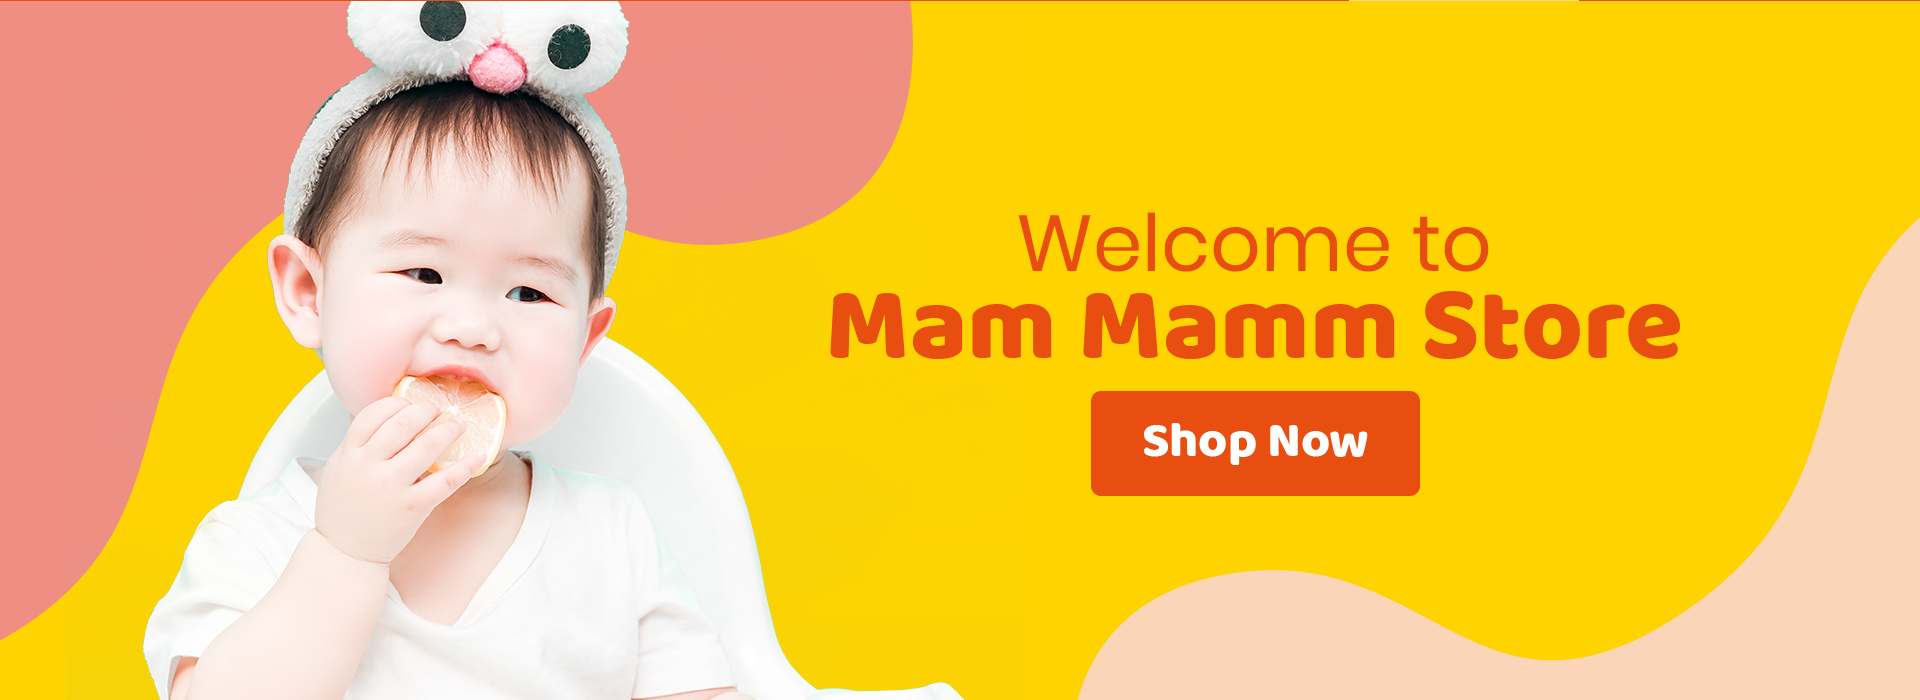 HOMEPAGE BANNER-WELCOME